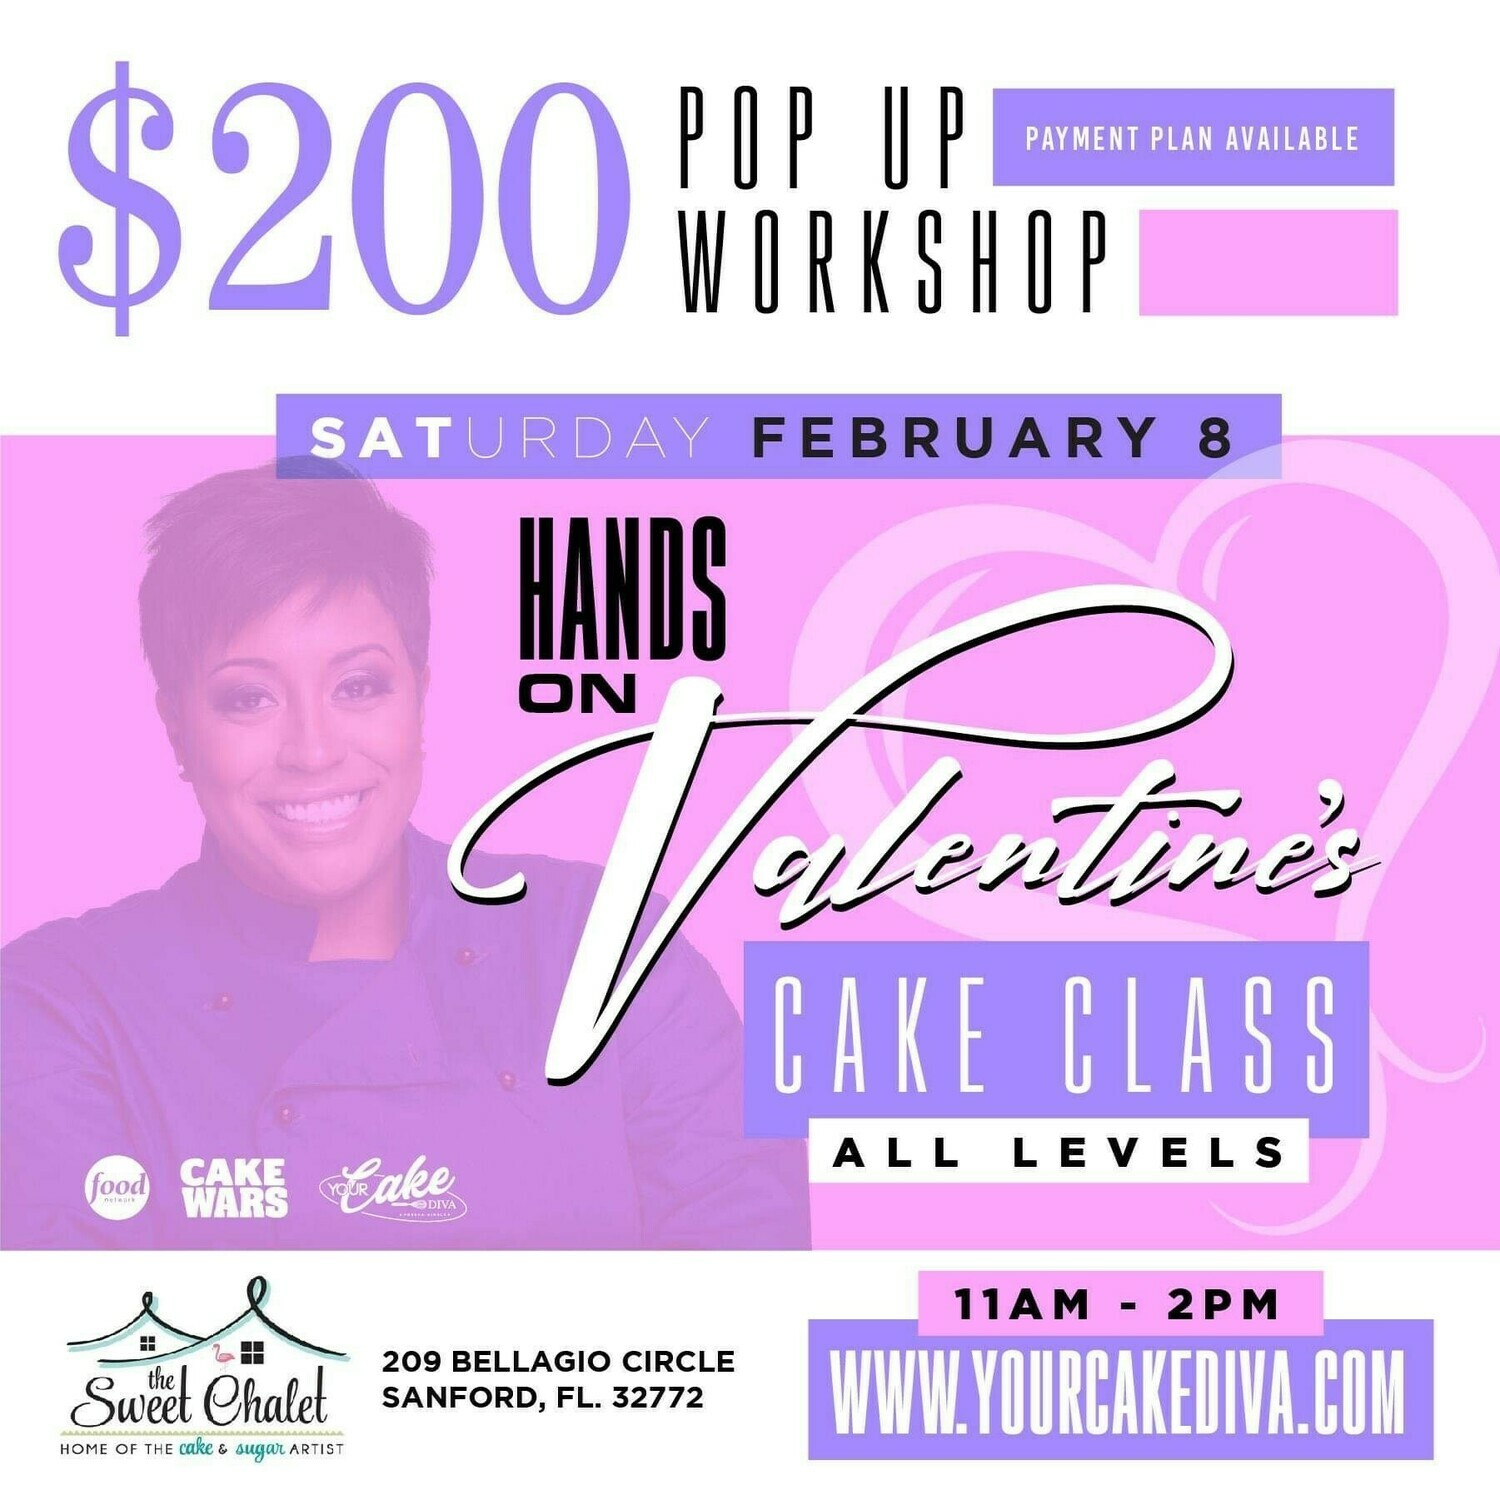 ATTENTION ORLANDO!!  Your CAKE DIVA, Porsha Kimble is coming to Sanford! FEB 8th 11 am to 2:00 pm REGISTER NOW: https://www.yourcakediva.com/ Valentine's  $200